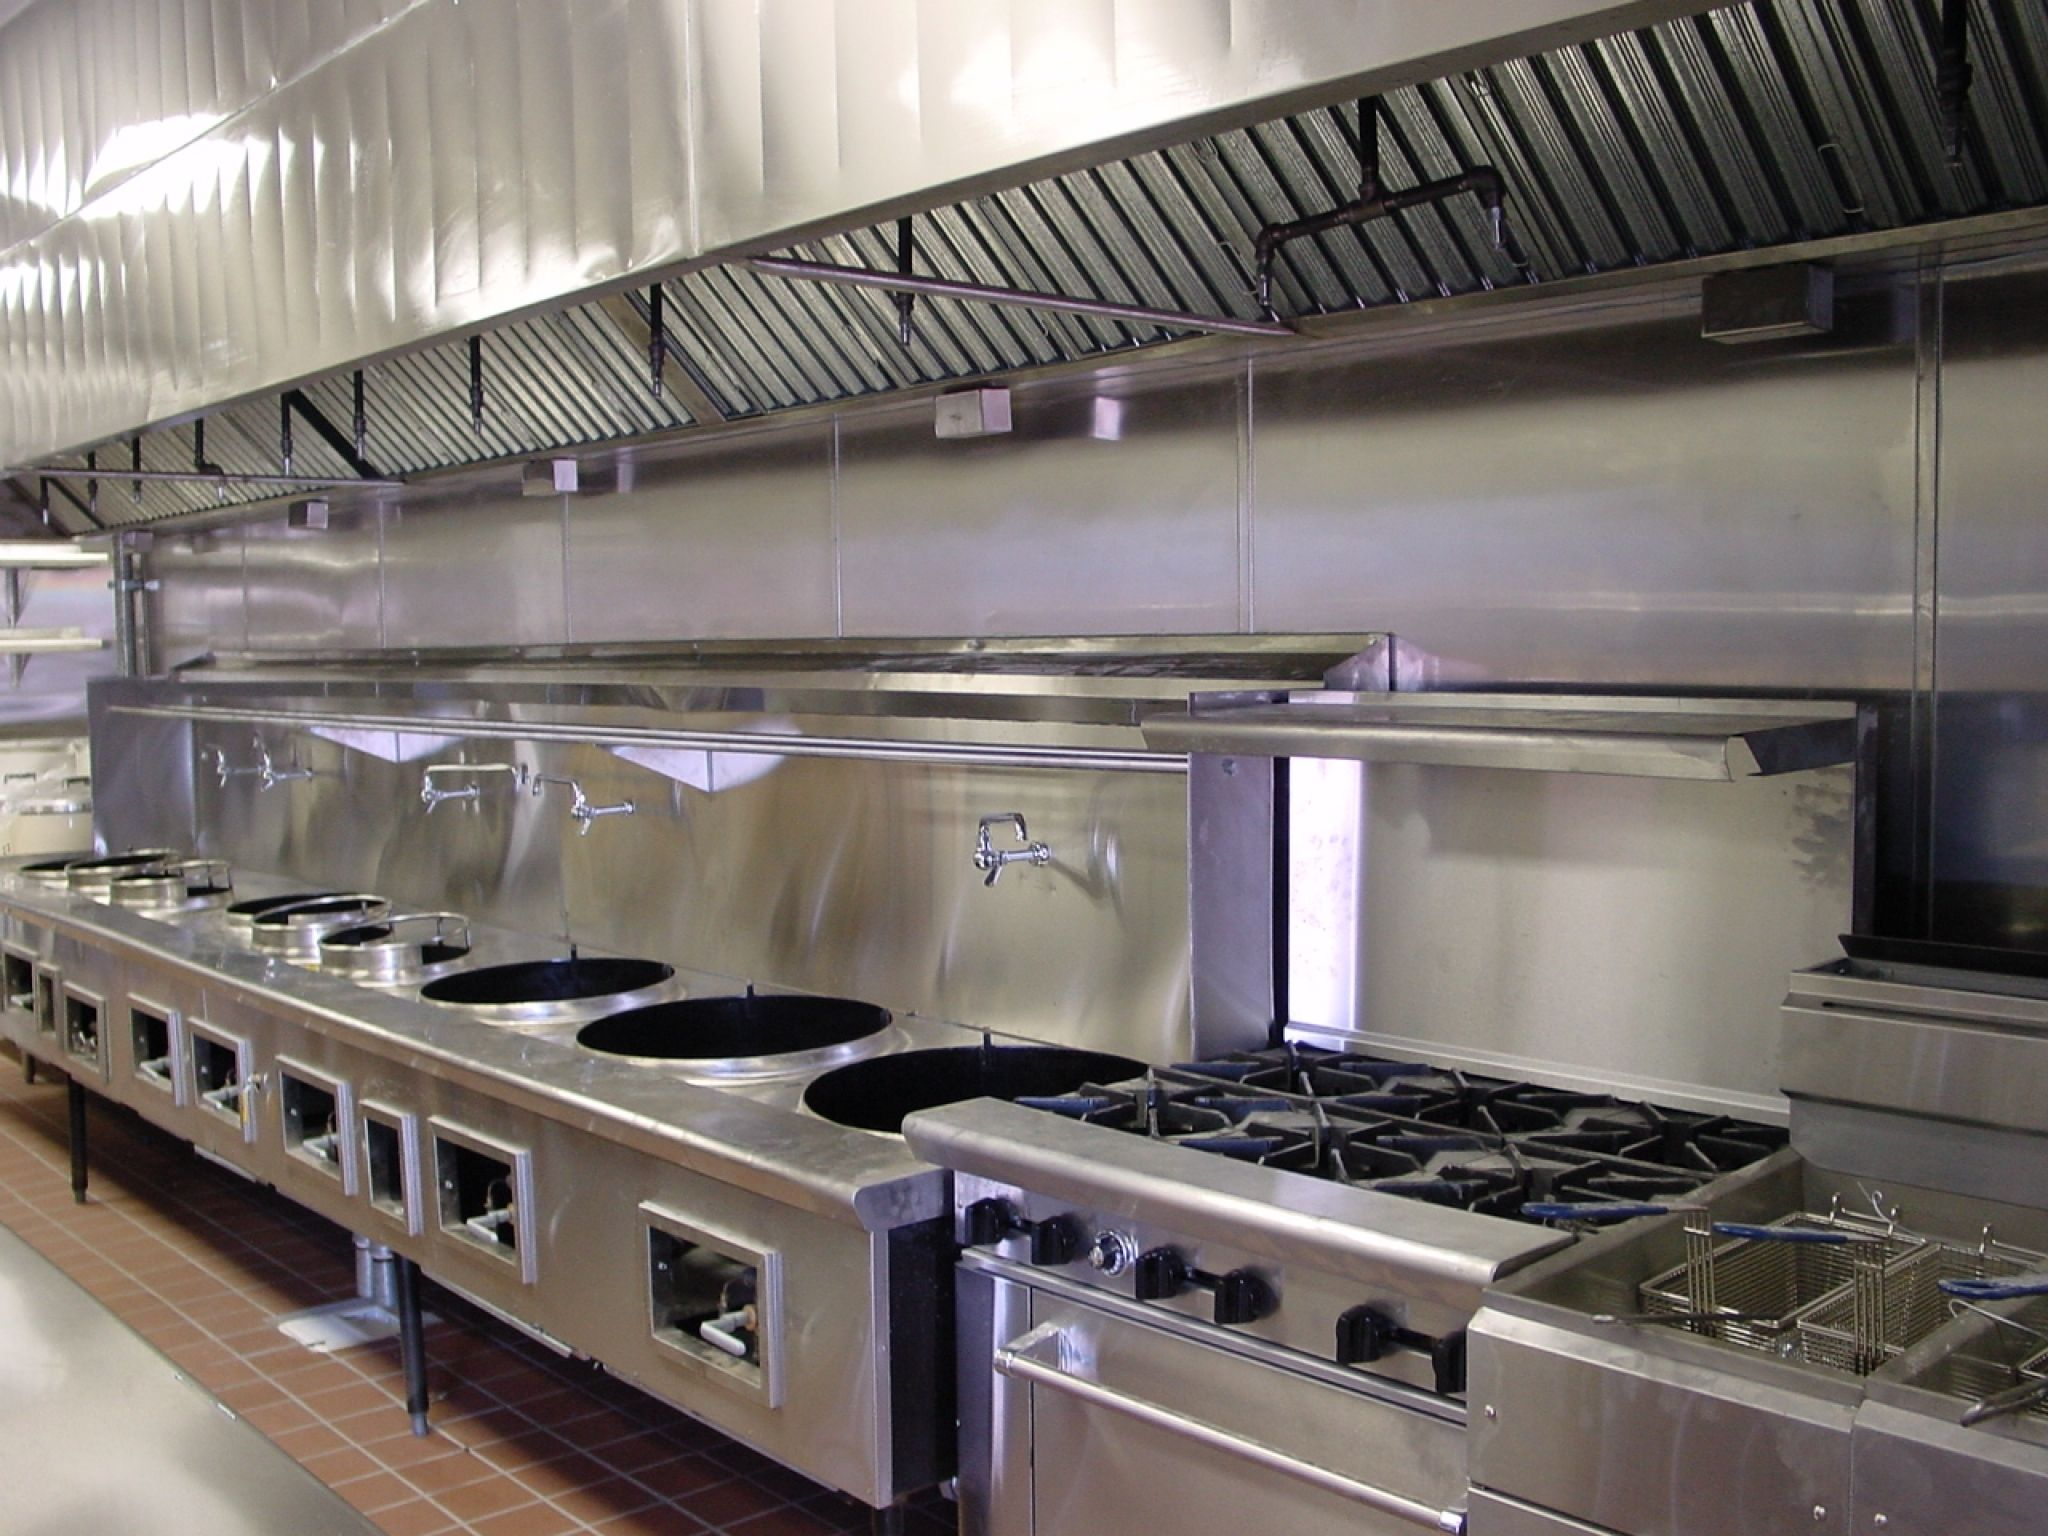 Commercial Kitchen Exhaust System Design Mesmerizing Outdoor Kitchen Exhaust Hoods  Best Paint For Interior Check More Review